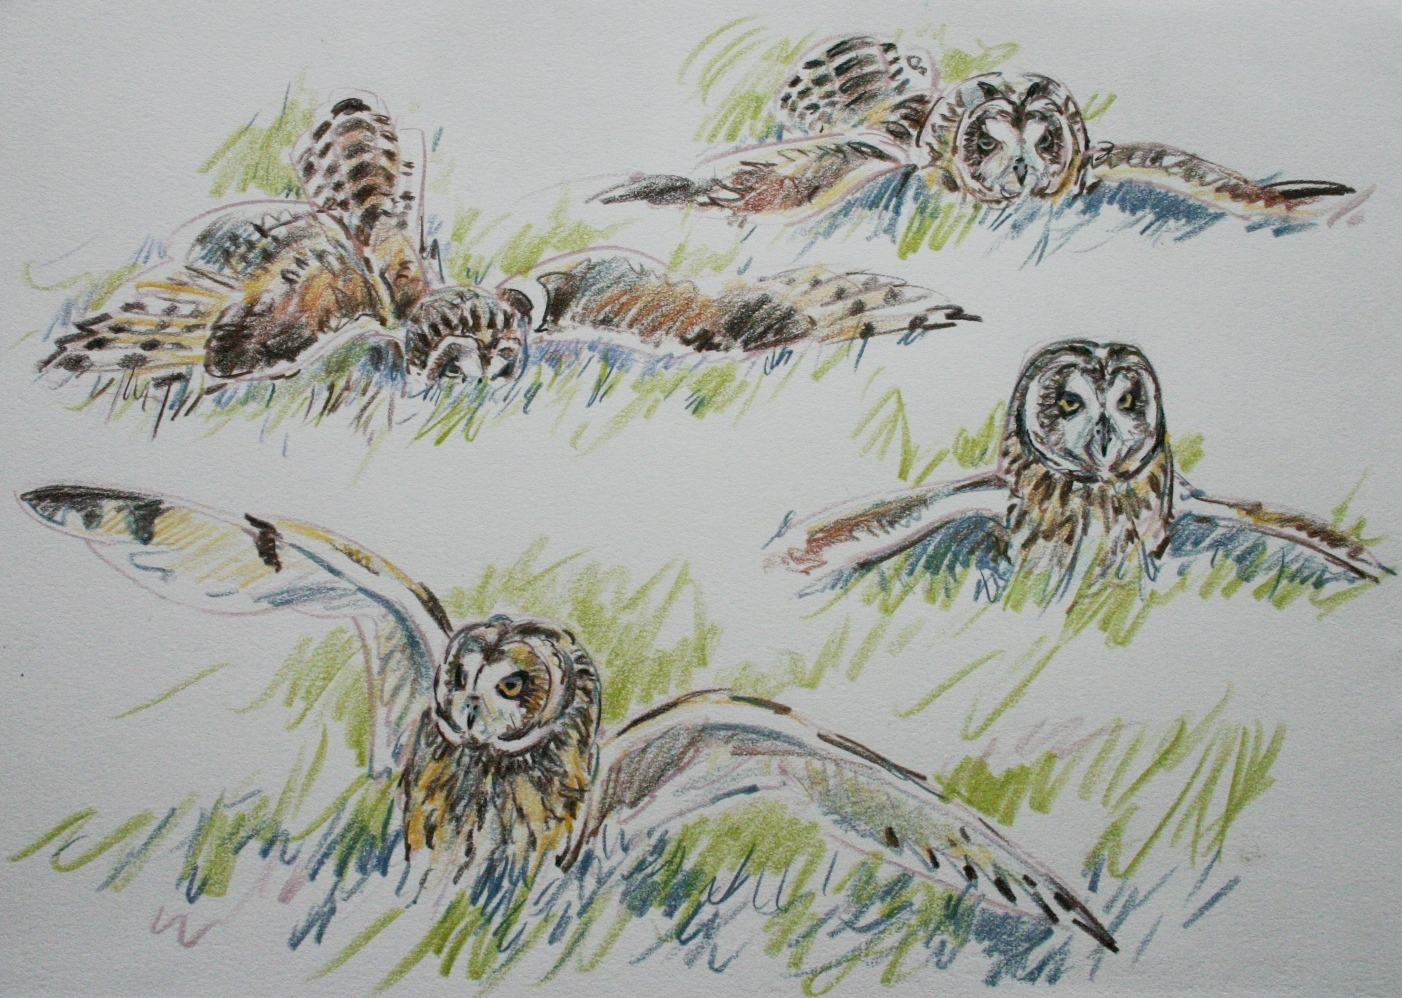 Short Eared Owl with Vole